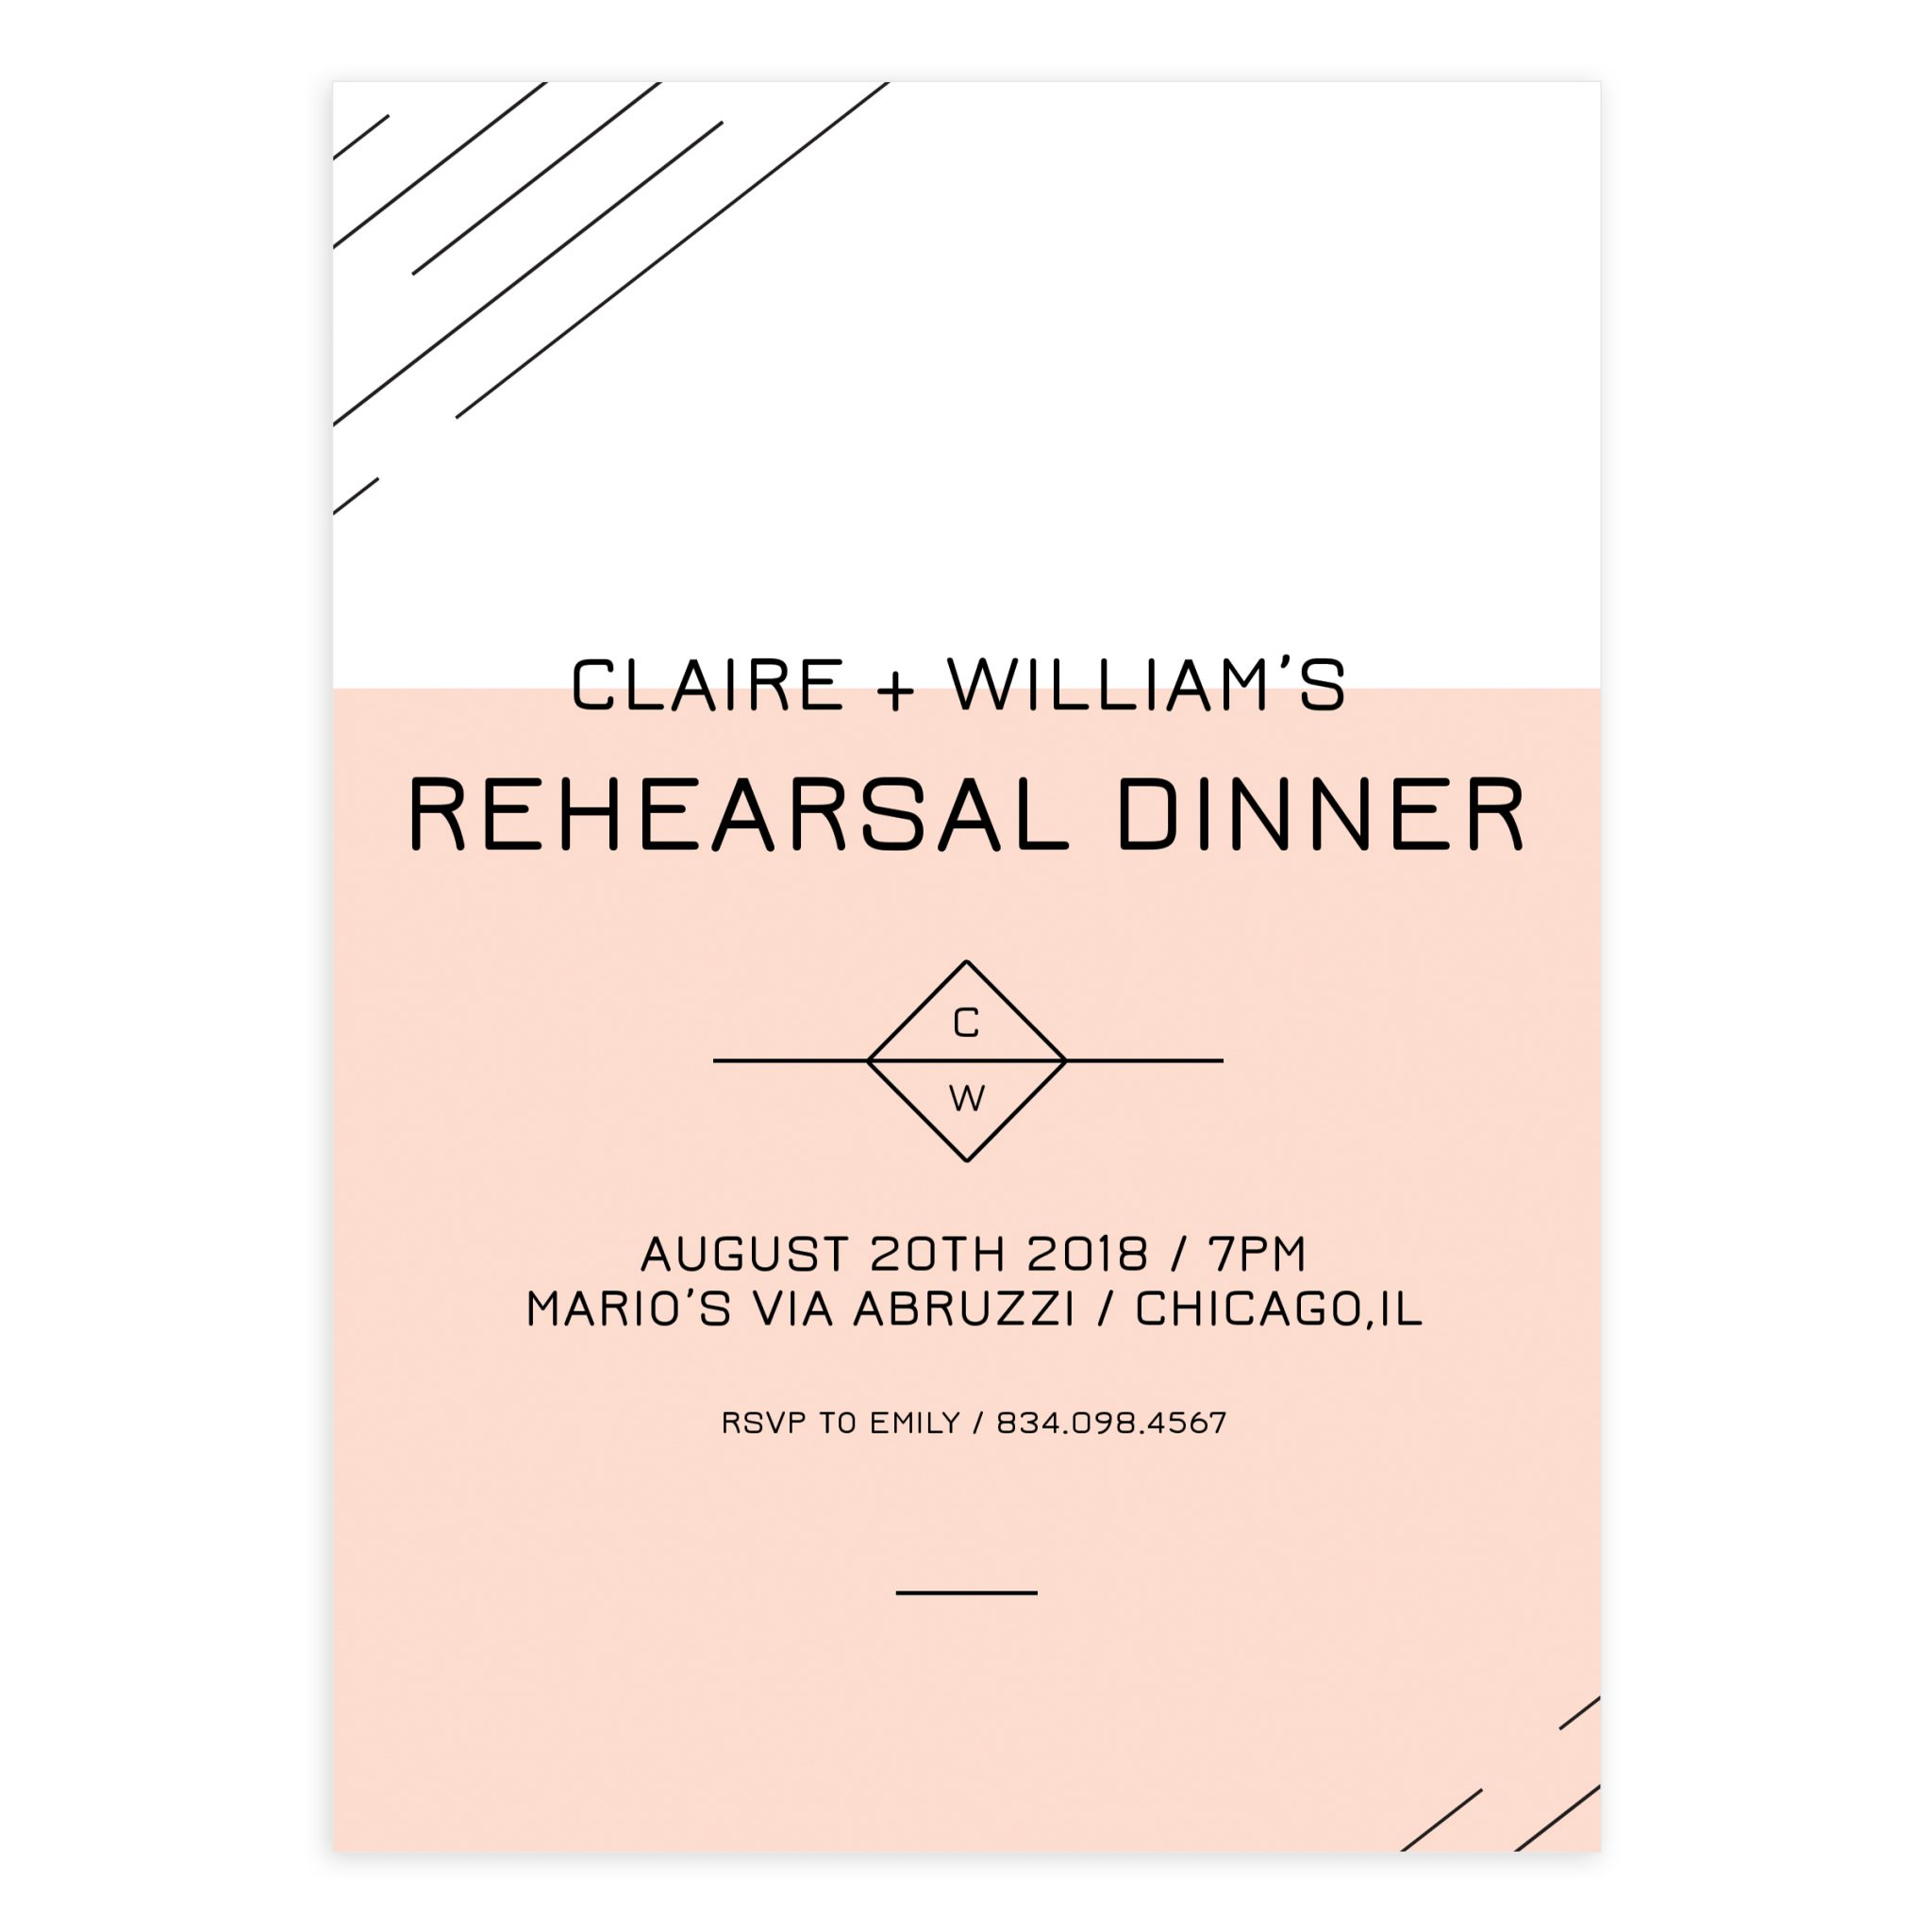 Wedding Rehearsal Invitation Template PSD